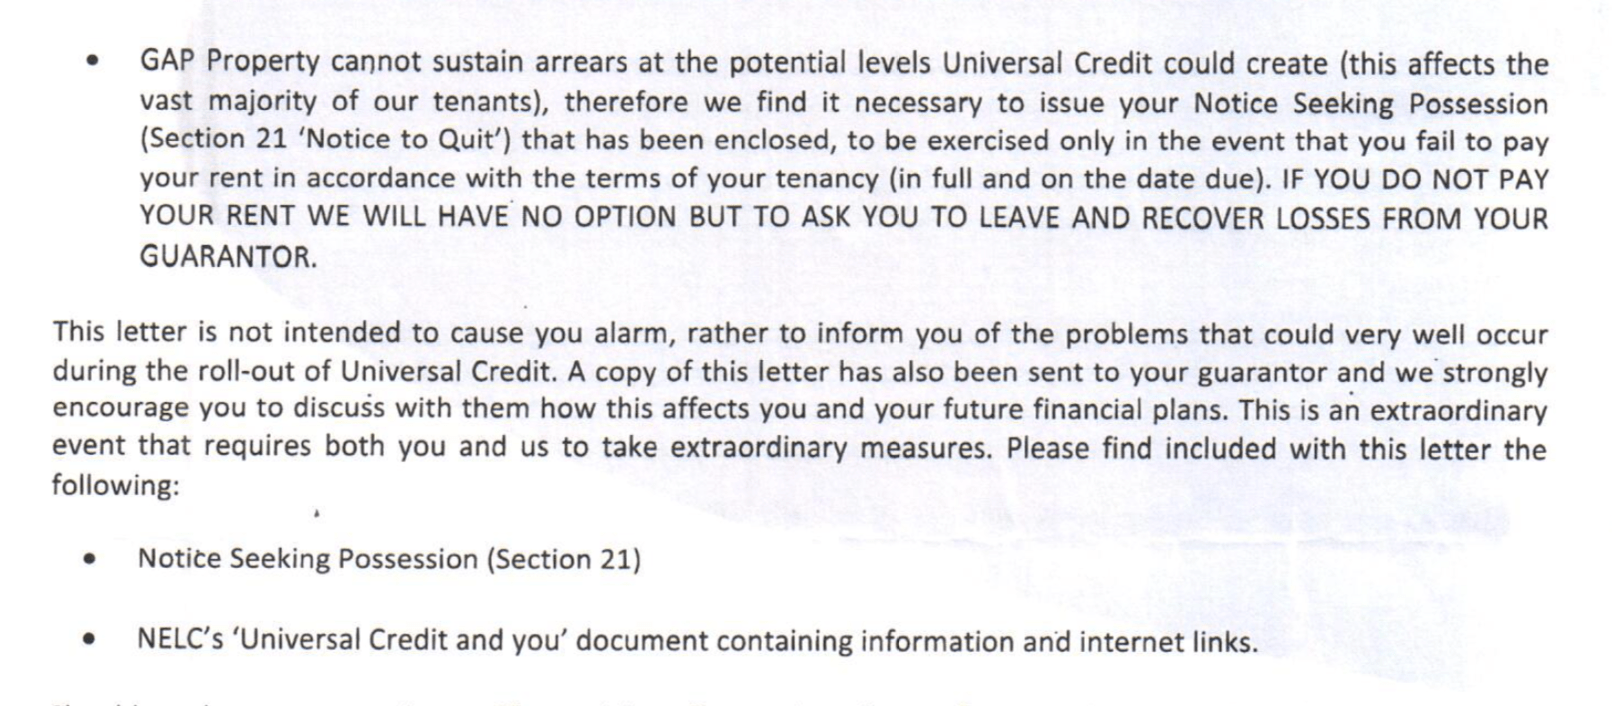 Universal Credit - here comes the homelessness - Nearly Legal